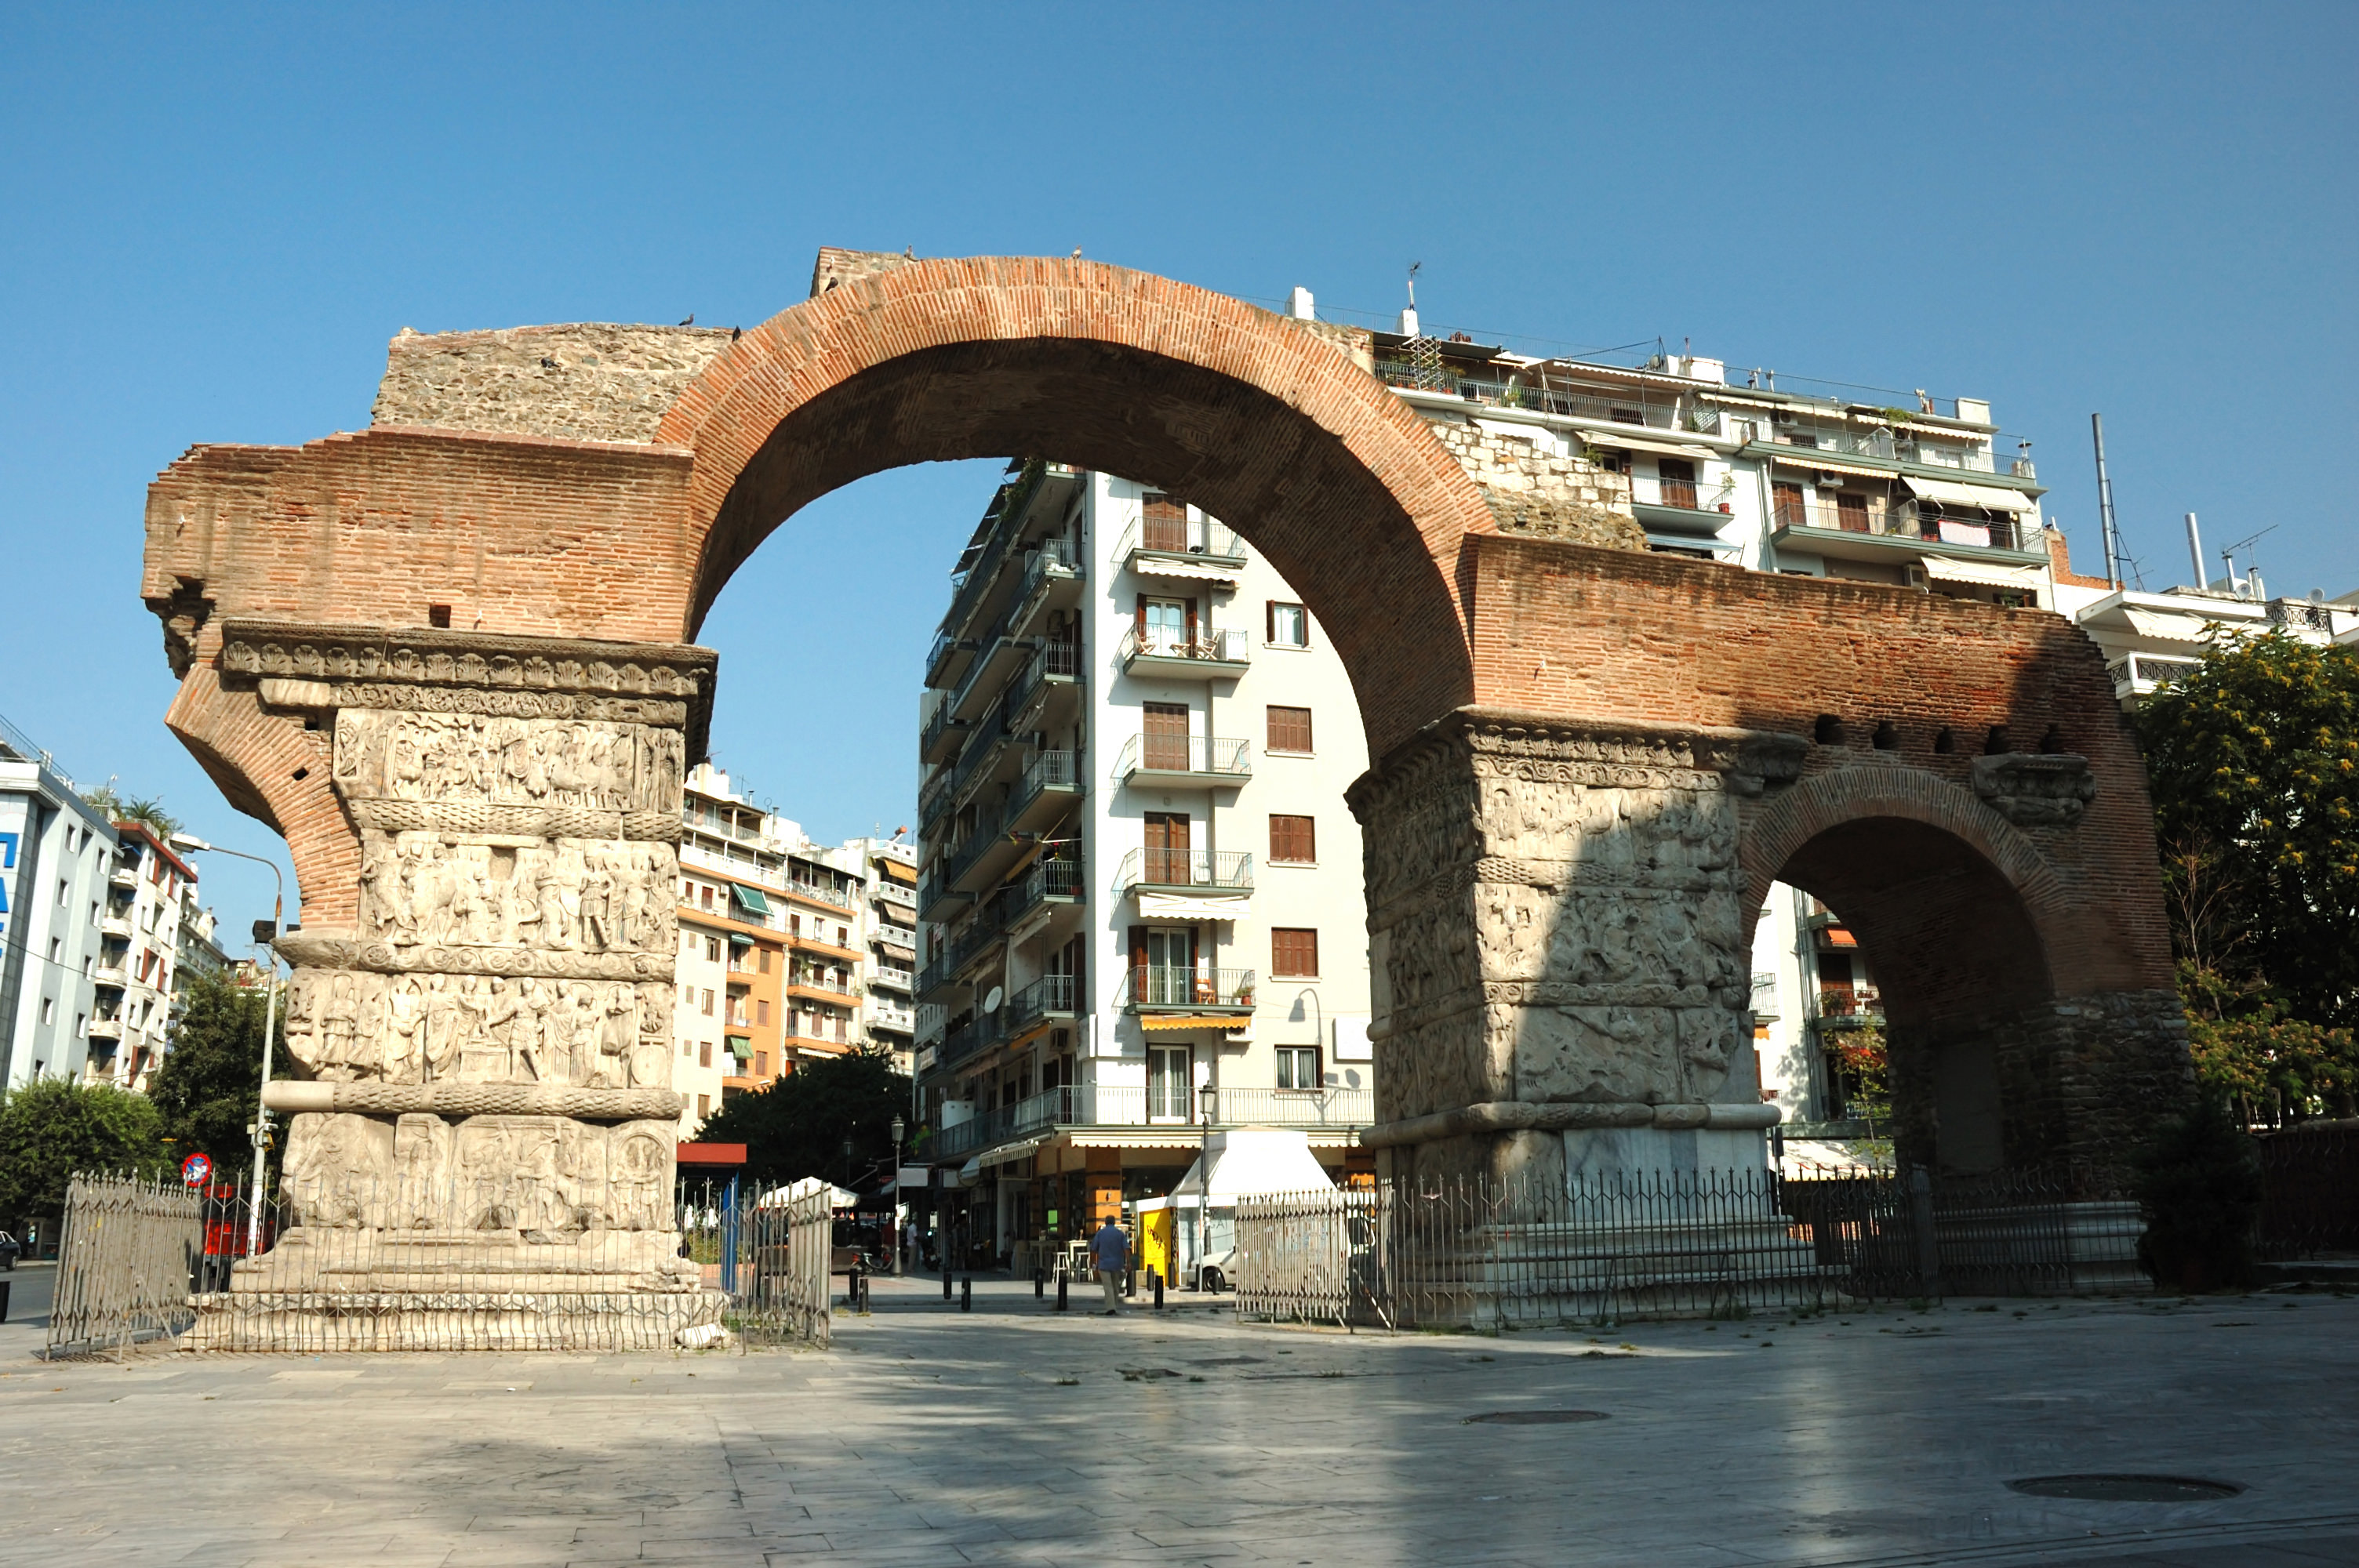 Visiting the Arch of Galerius and the Rotunda in Thessaloniki